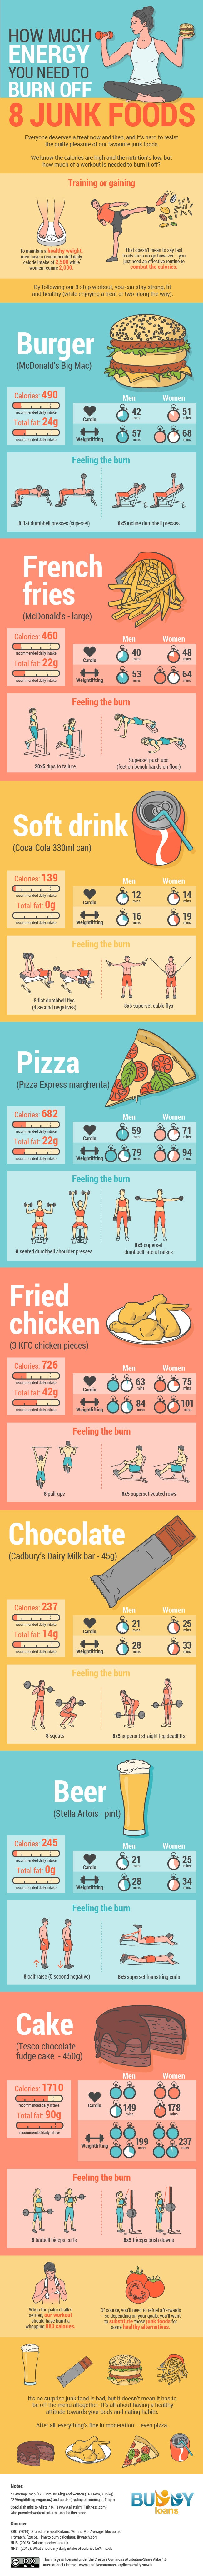 How much do you have to work out to burn off the junk food you eat?